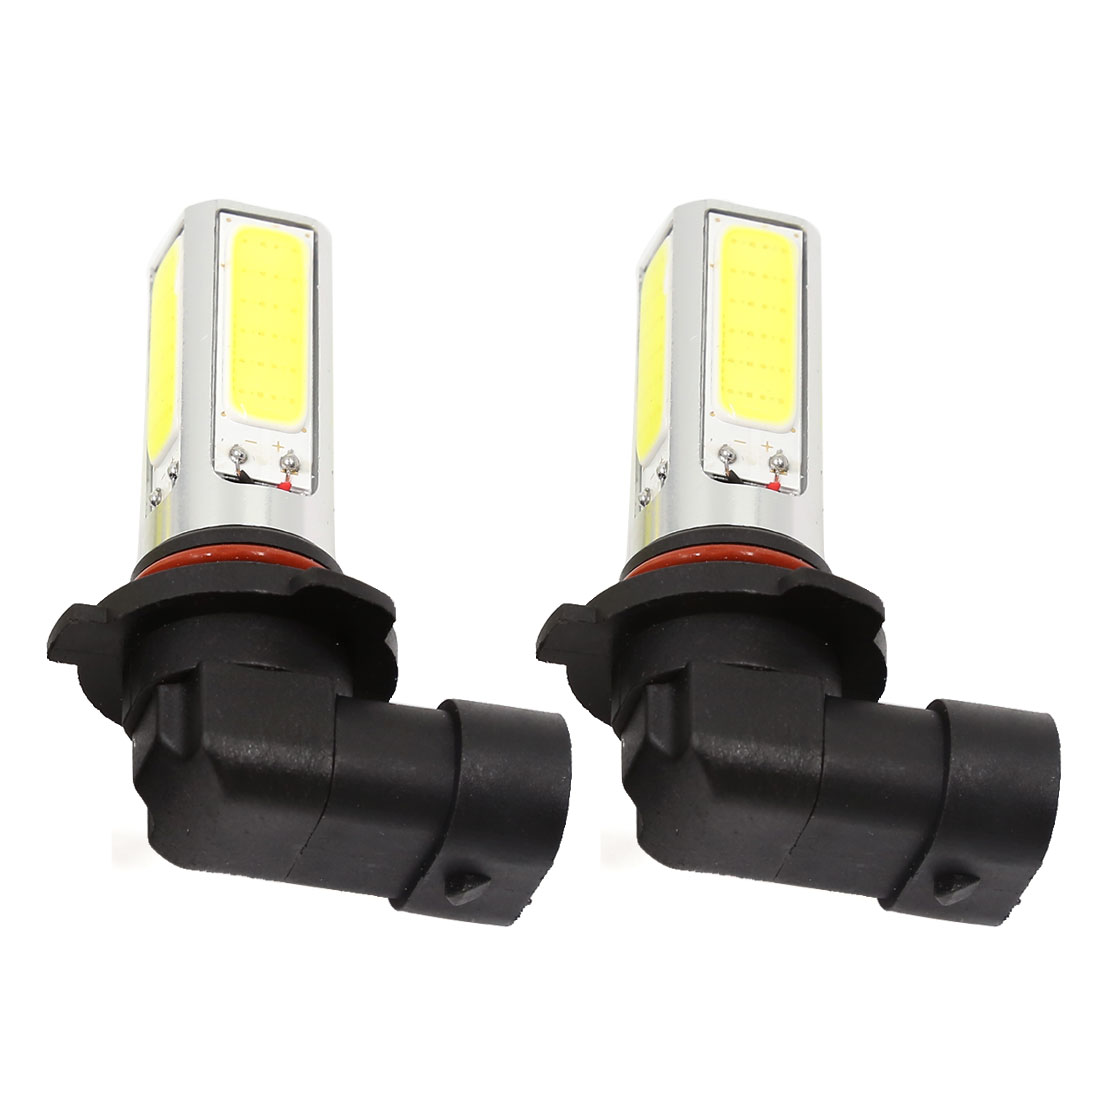 2pcs 9006 HB4 9012 White COB LED Headlight Driving Fog Light Lamp DC 12V 15W